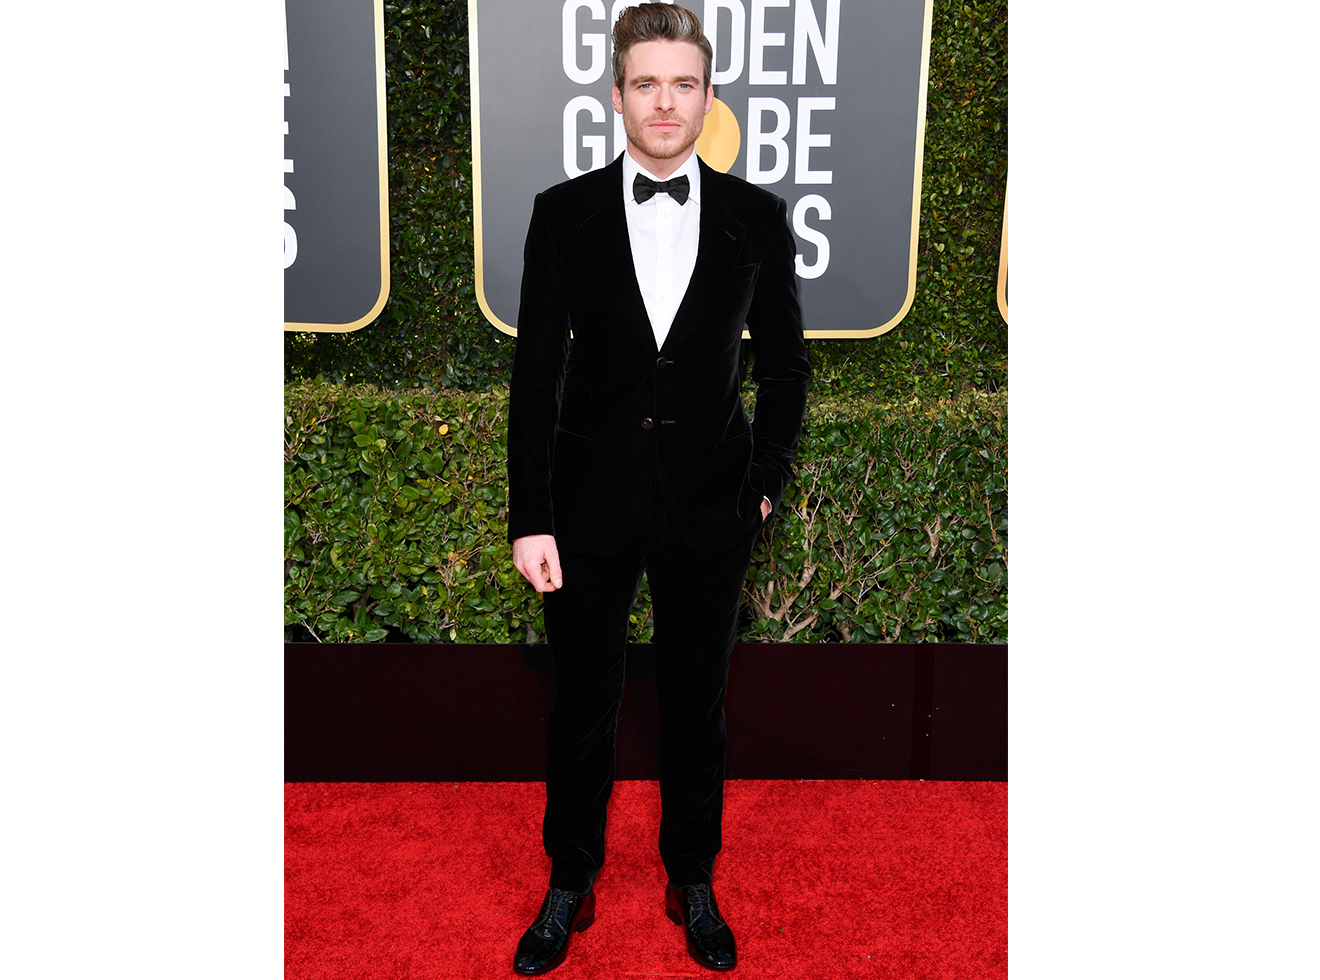 Richard Madden attends the 76th Annual Golden Globe Awards held at The Beverly Hilton Hotel on January 06, 2019 in Beverly Hills, California.